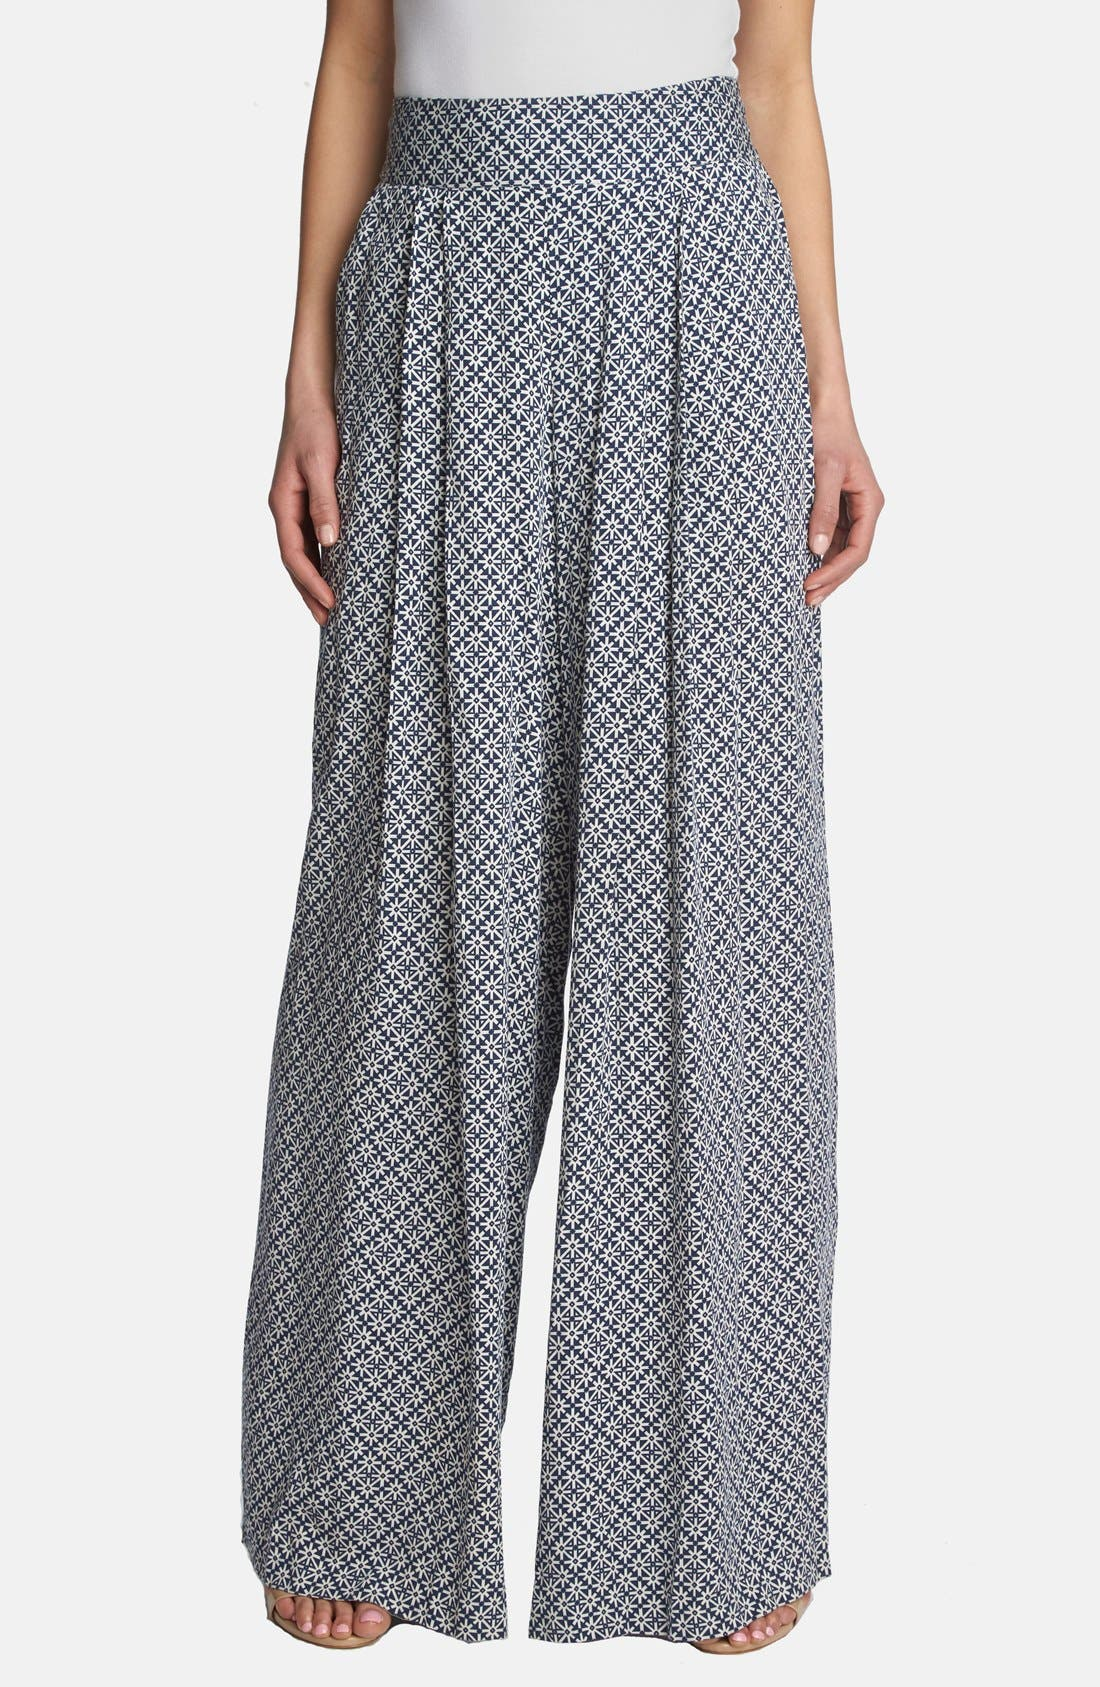 Main Image - 1.STATE High Rise Wide Leg Print Trousers